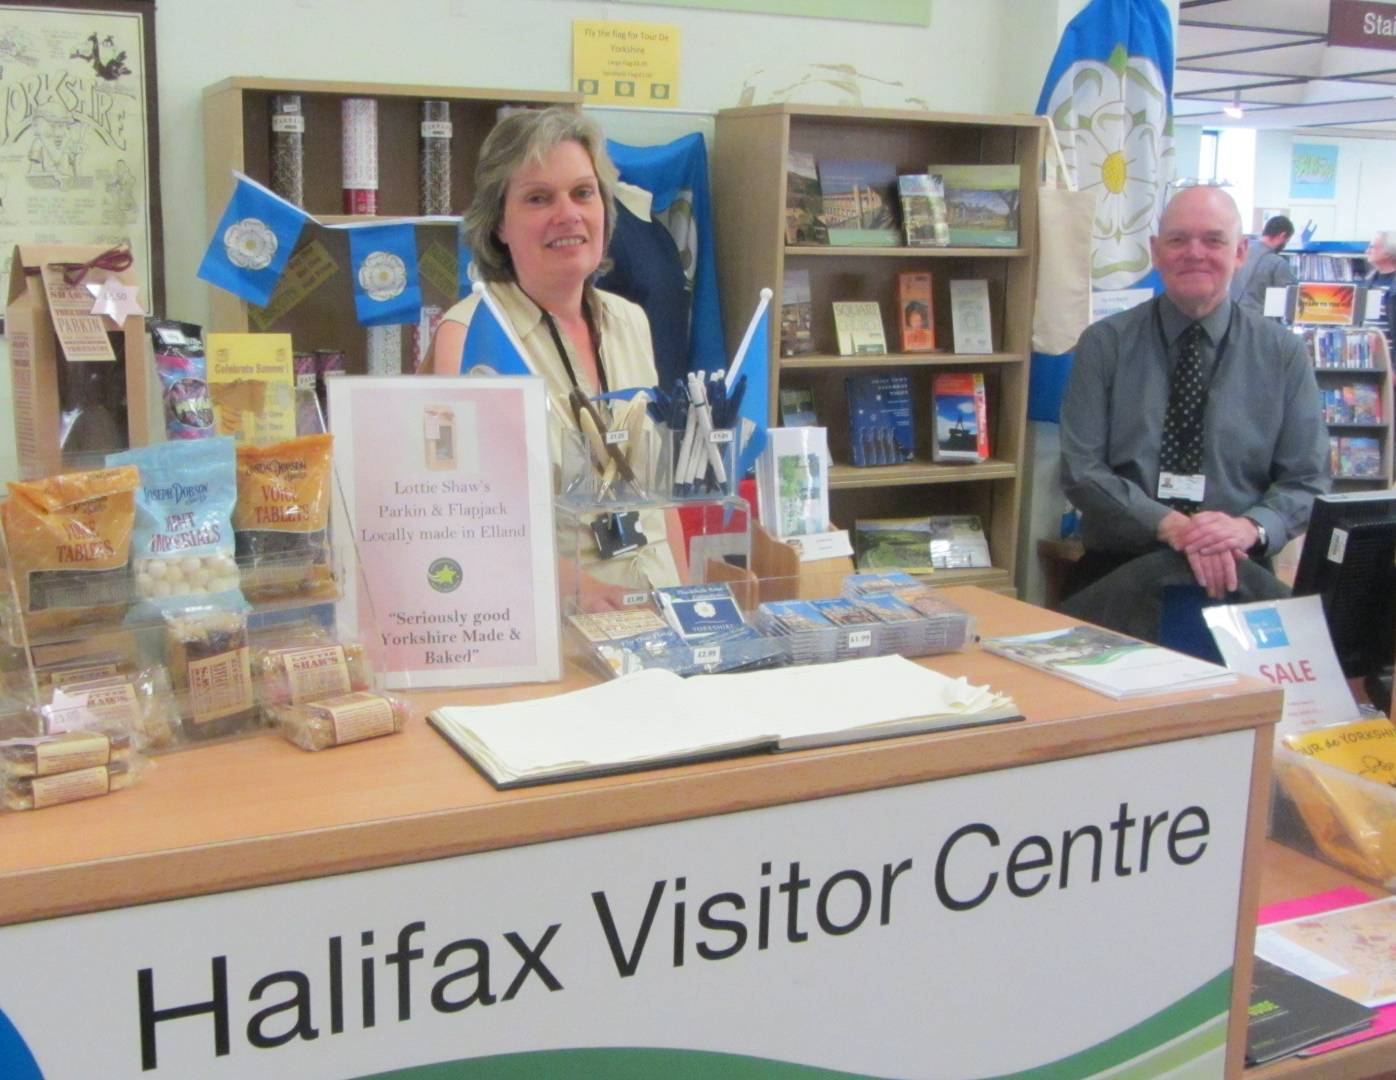 Halifax Visitor Centre